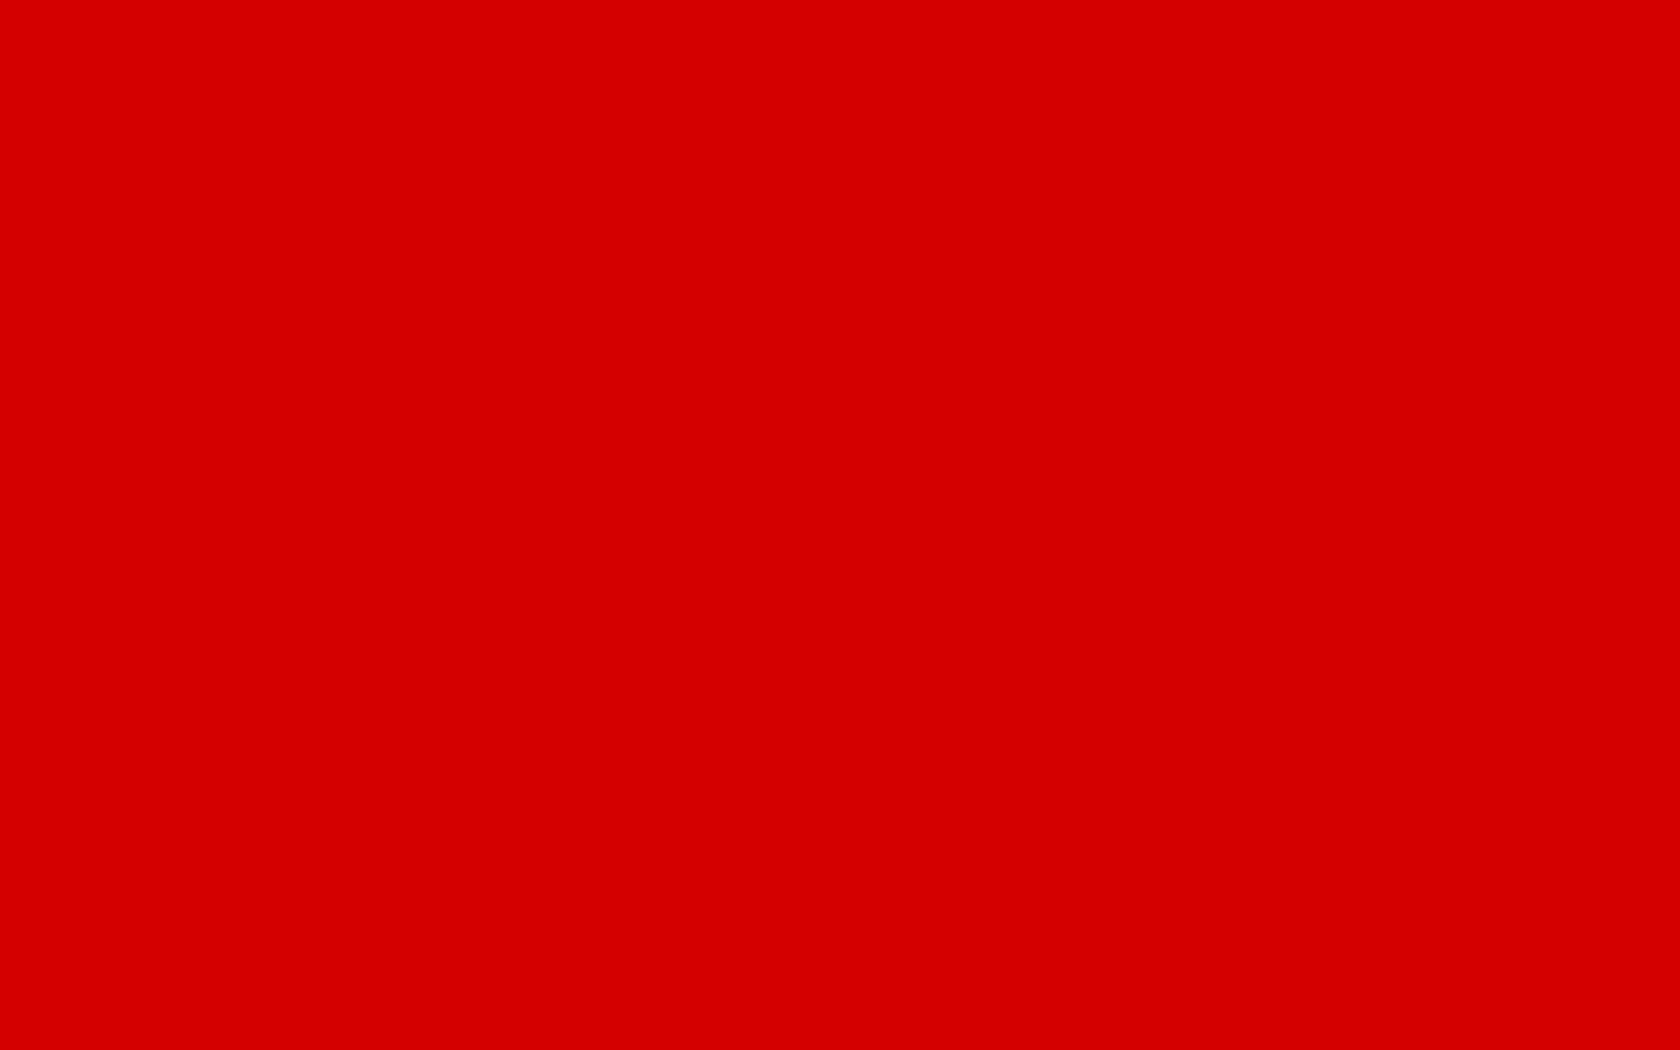 1680x1050 Rosso Corsa Solid Color Background